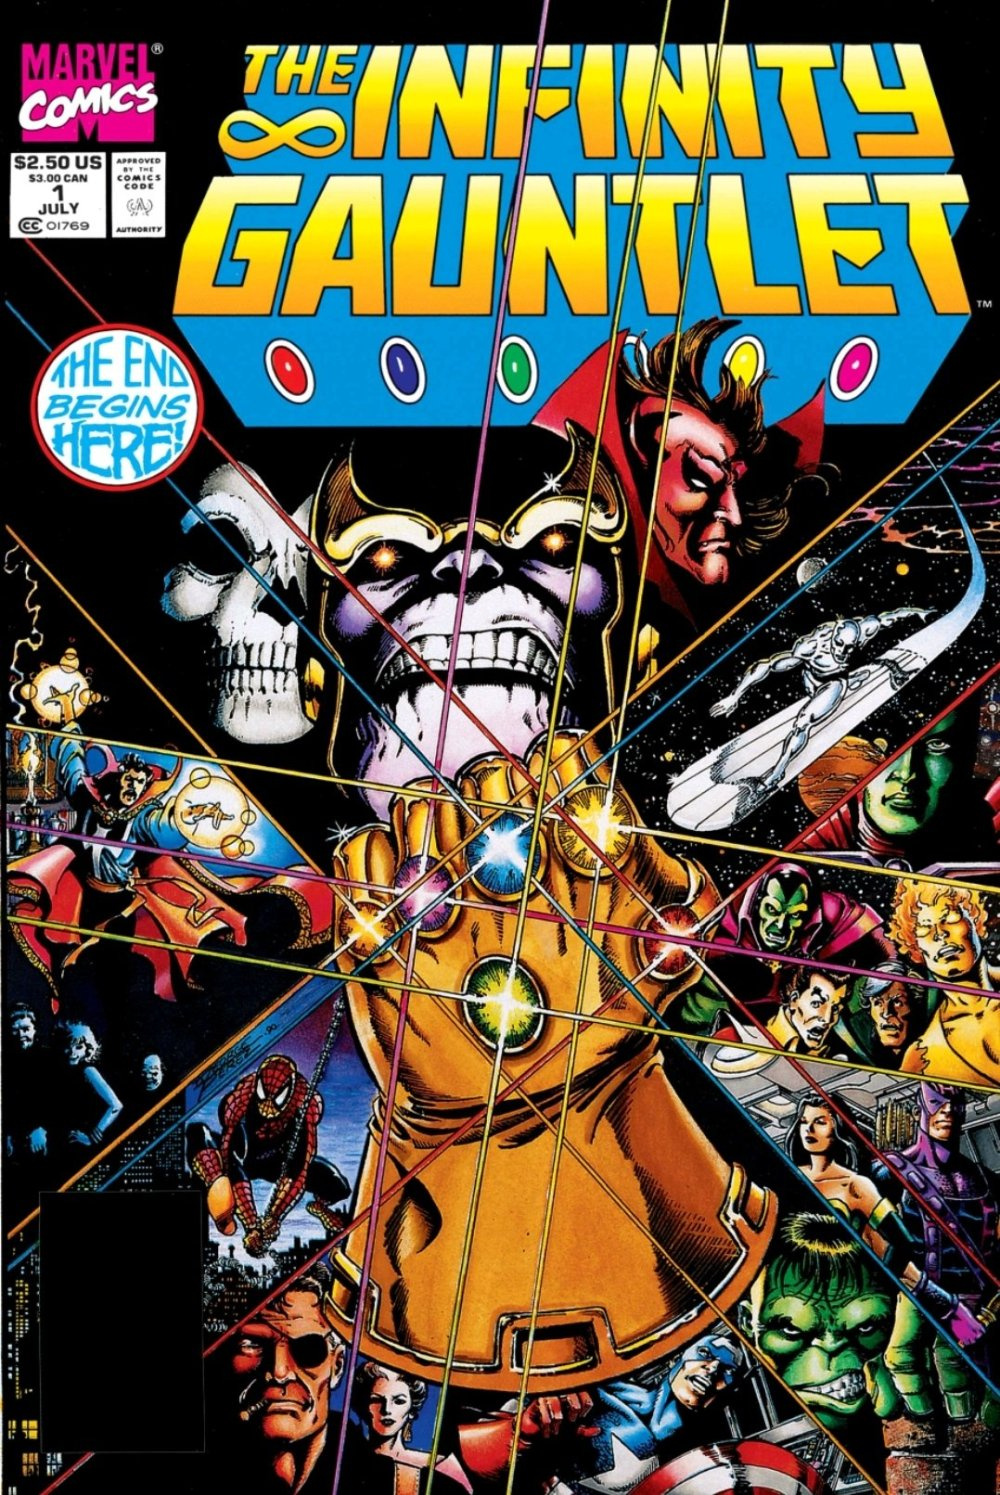 Infinity Gauntlet dope ass cover